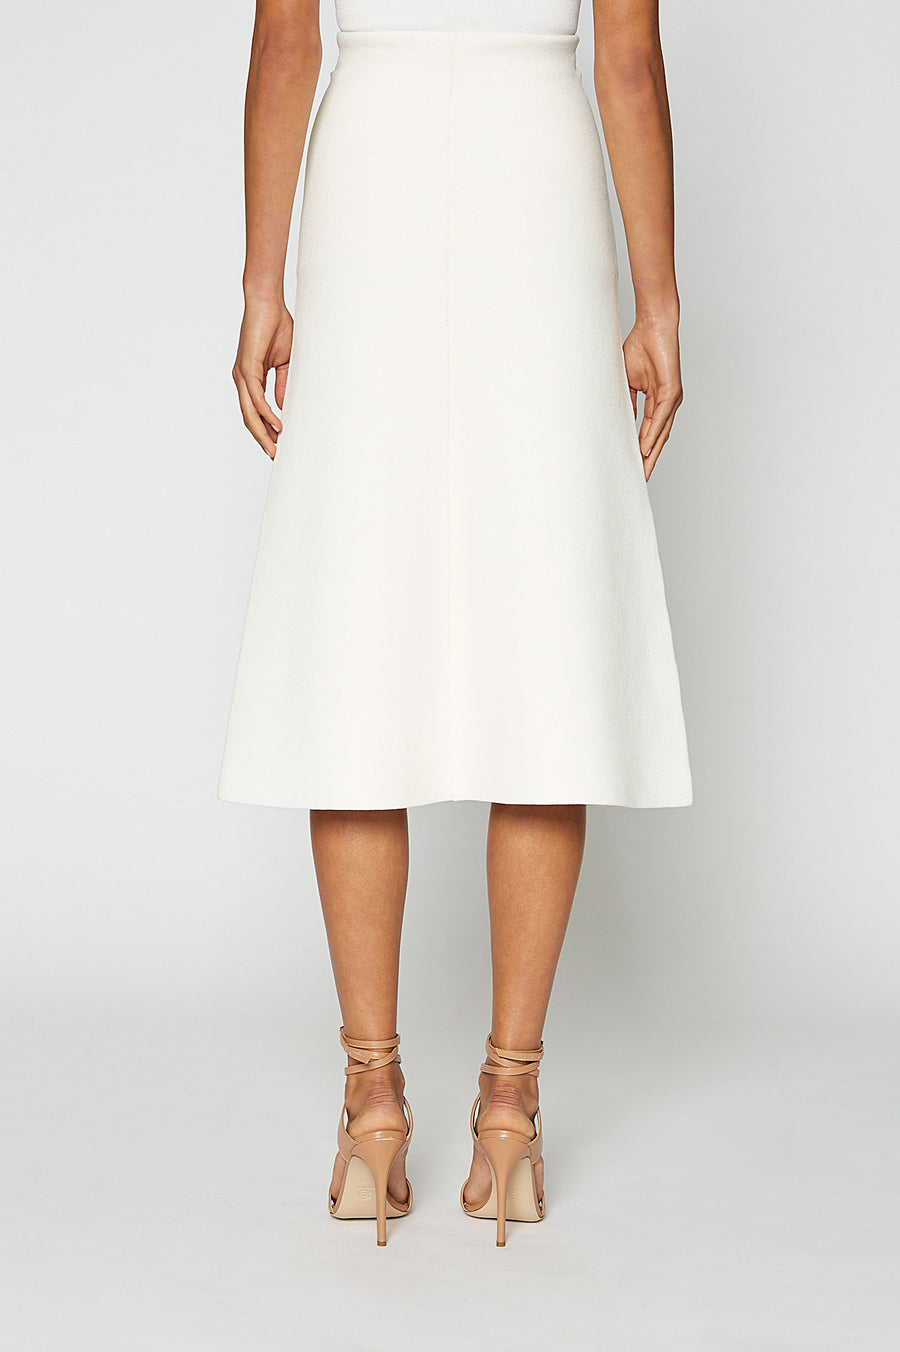 Crepe Knit A-Line Skirt, fitted at the waist, A-line body, sits below knee, Color Cream